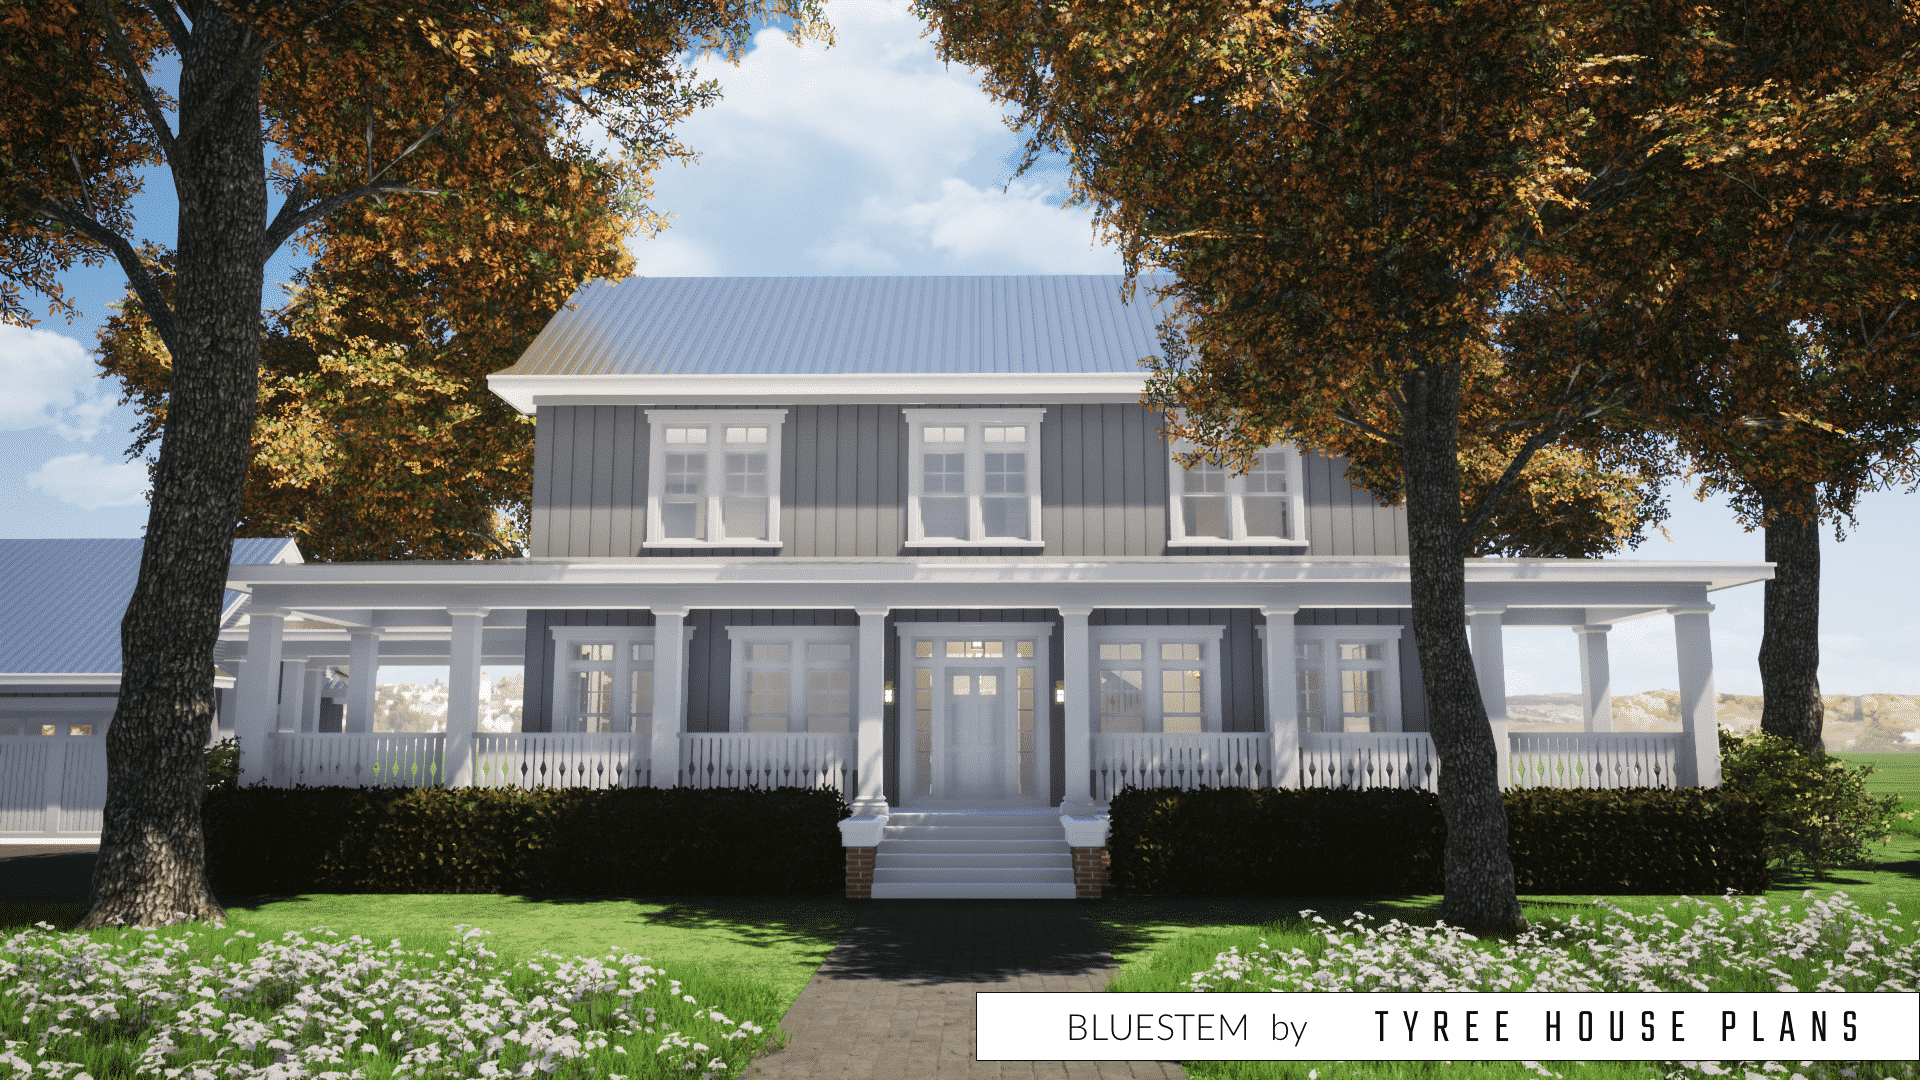 Bluestem by Tyree House Plans